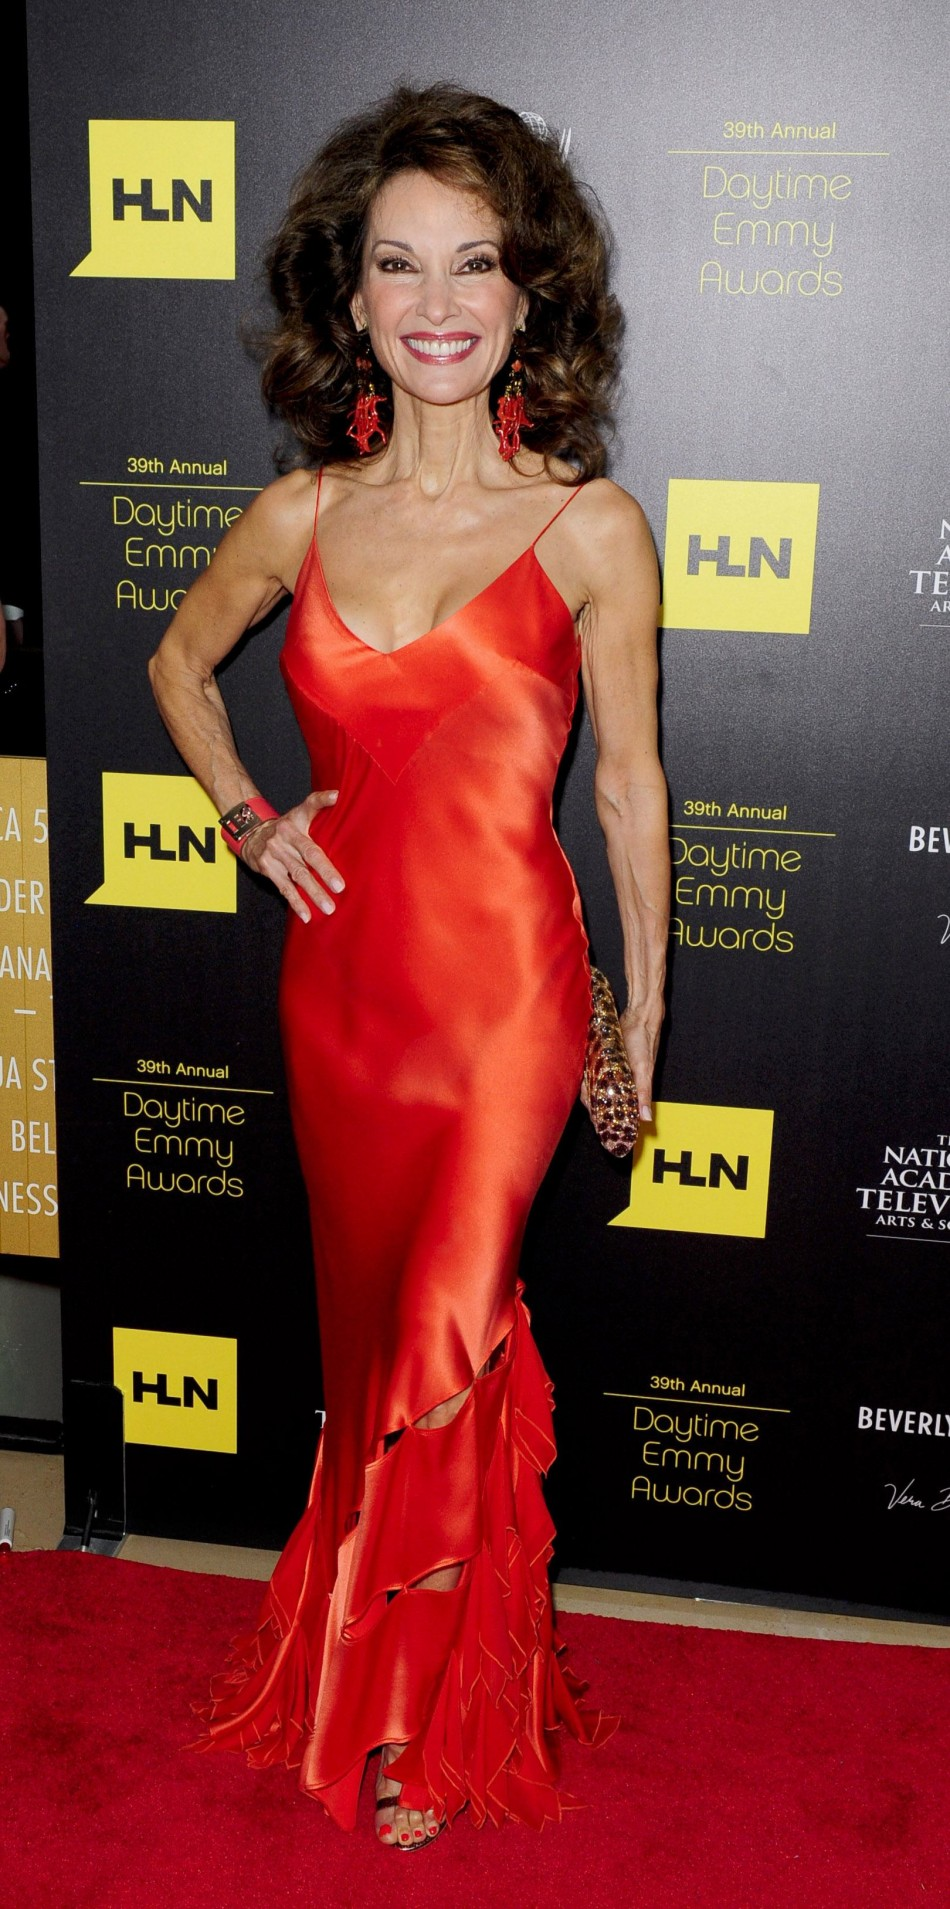 Susan Lucci arrives at the 39th Daytime Emmy Awards in Beverly Hills